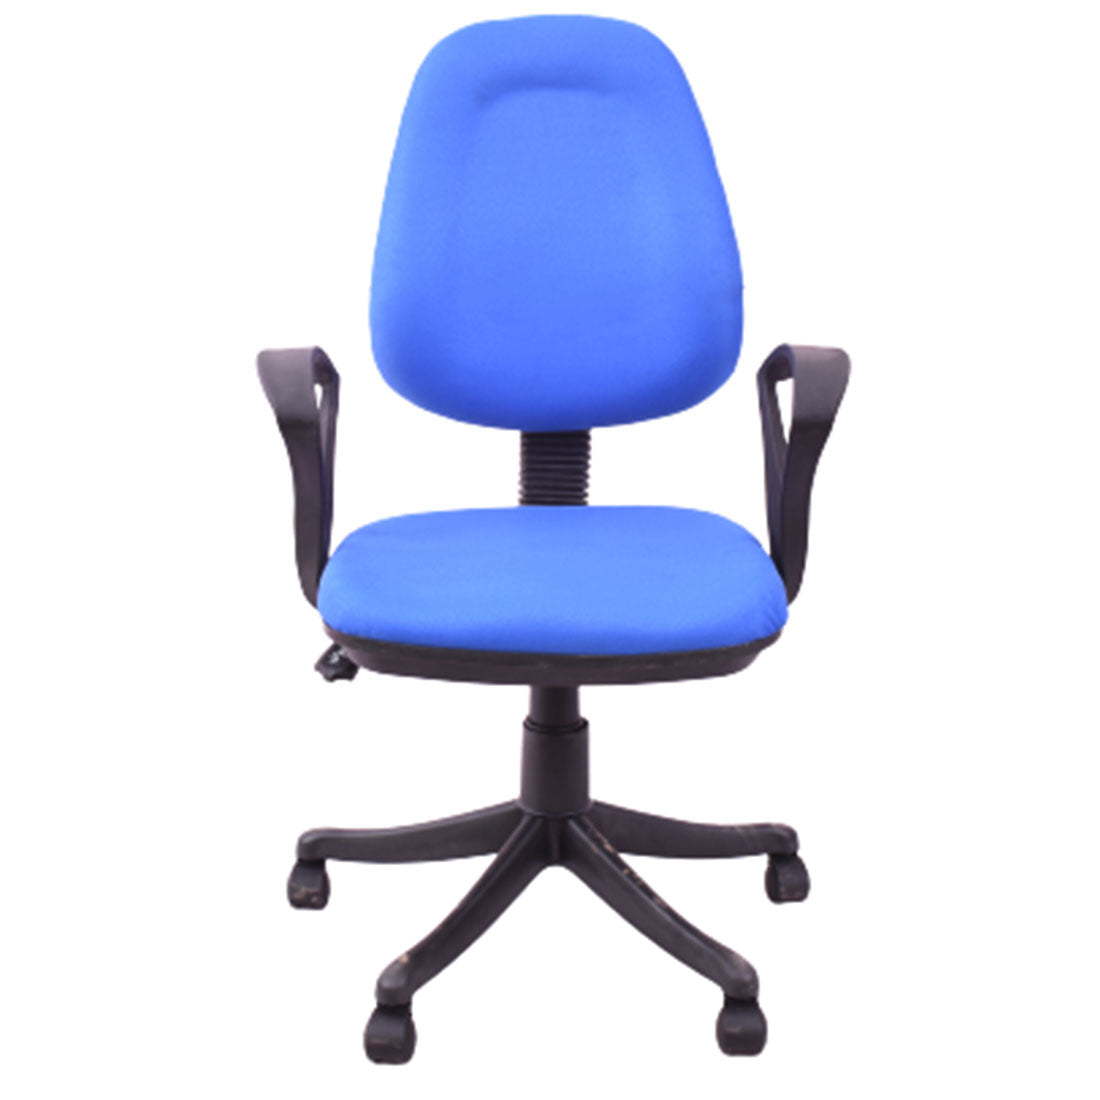 Comfort Medium Back Revolving Chair for Office Purpose (Blue)